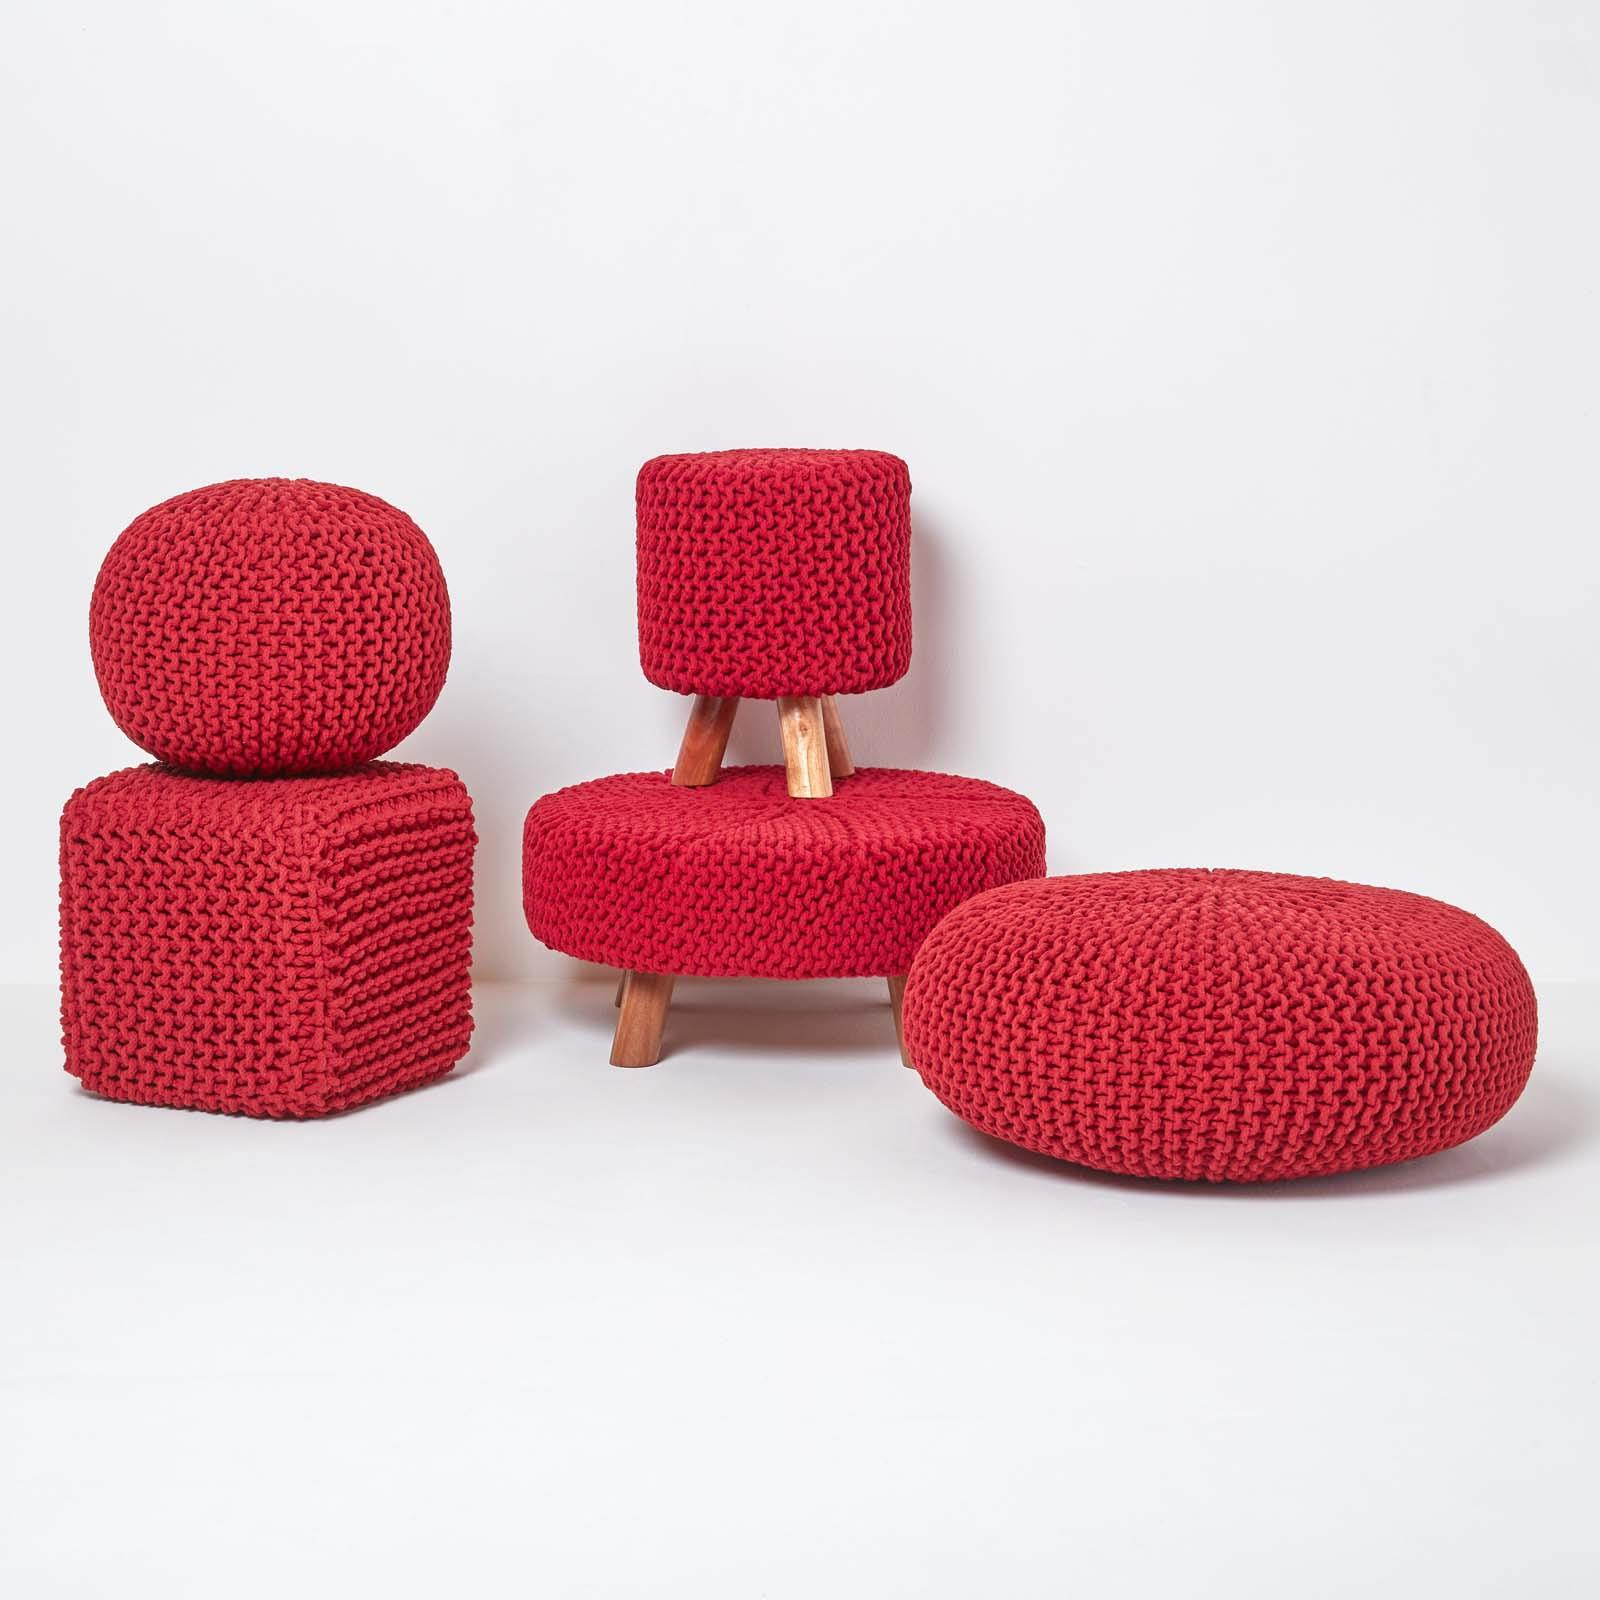 Hand-Knitted-100-Cotton-Pouffes-Round-Sphere-Or-Cube-Square-Chunky-Footstools thumbnail 174